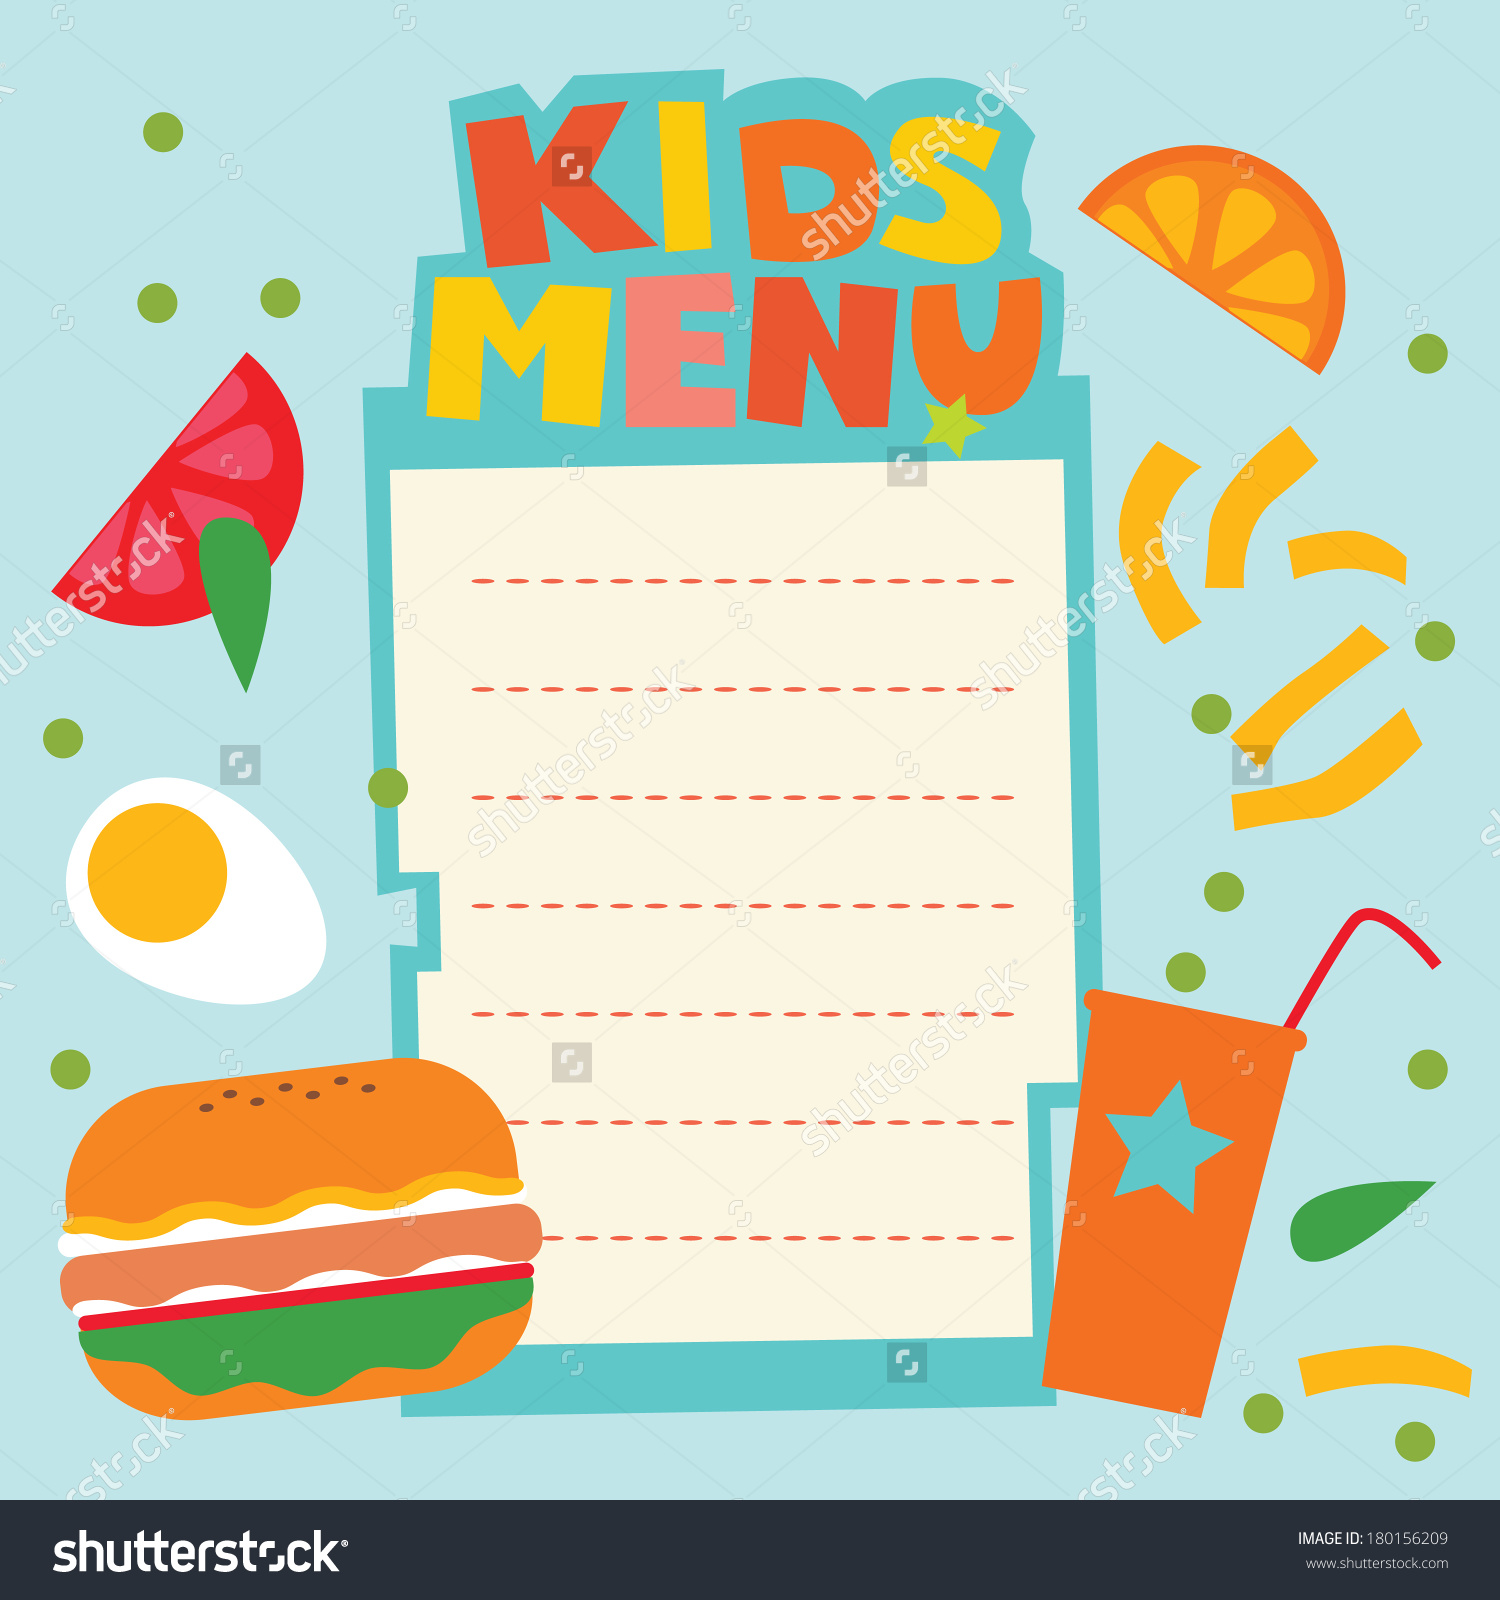 free kids menu templates credit card template word - Free Templates For Kids